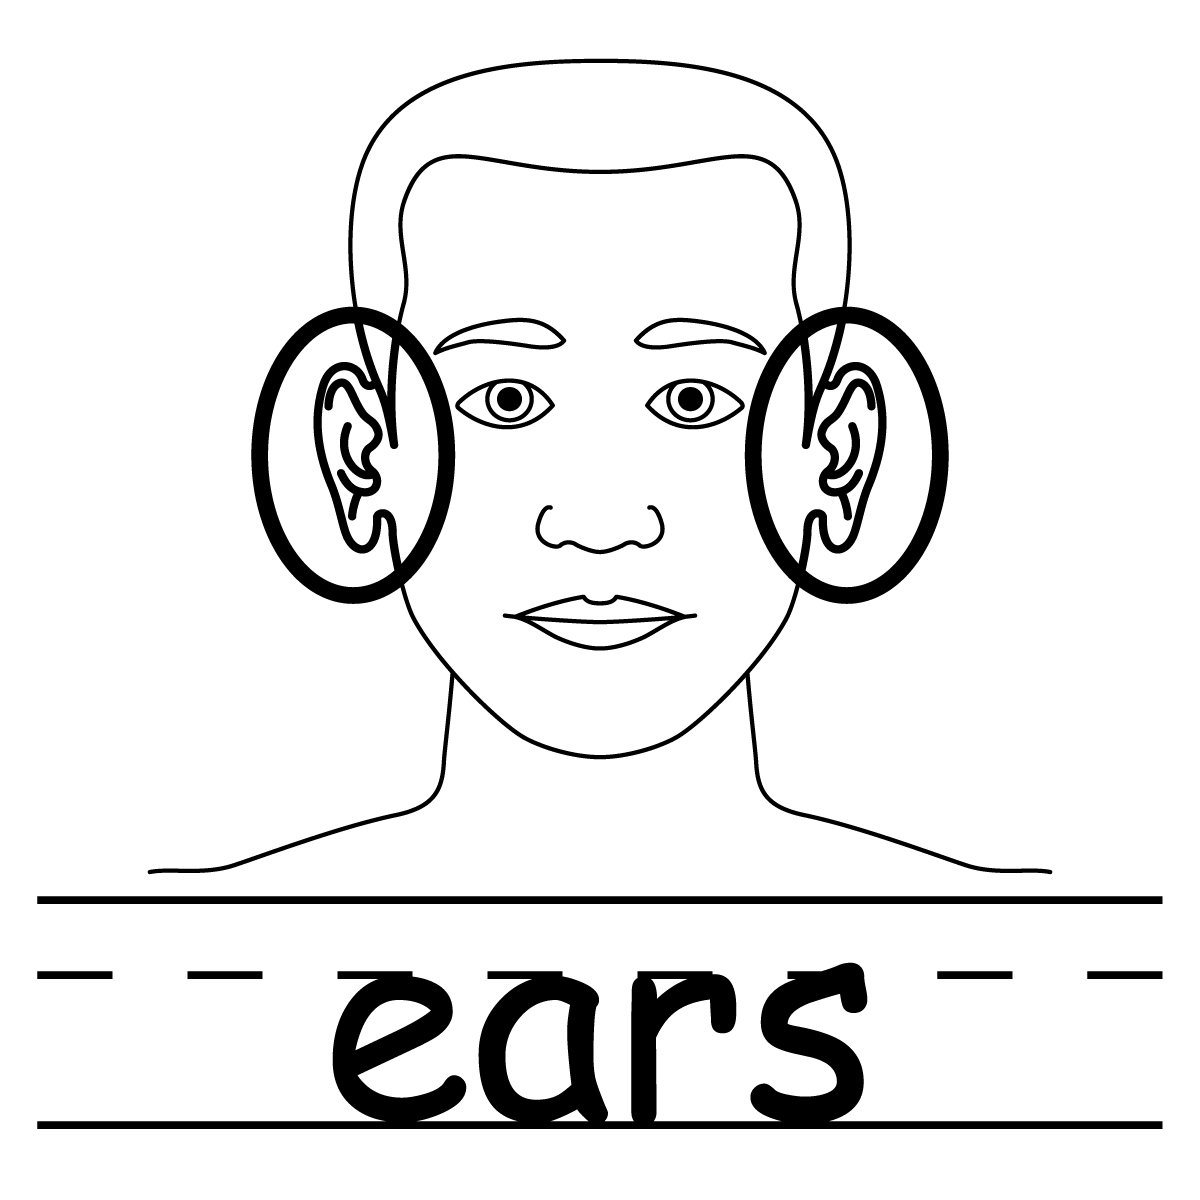 Ear Clipart Black And White   Clipart Panda   Free Clipart Images